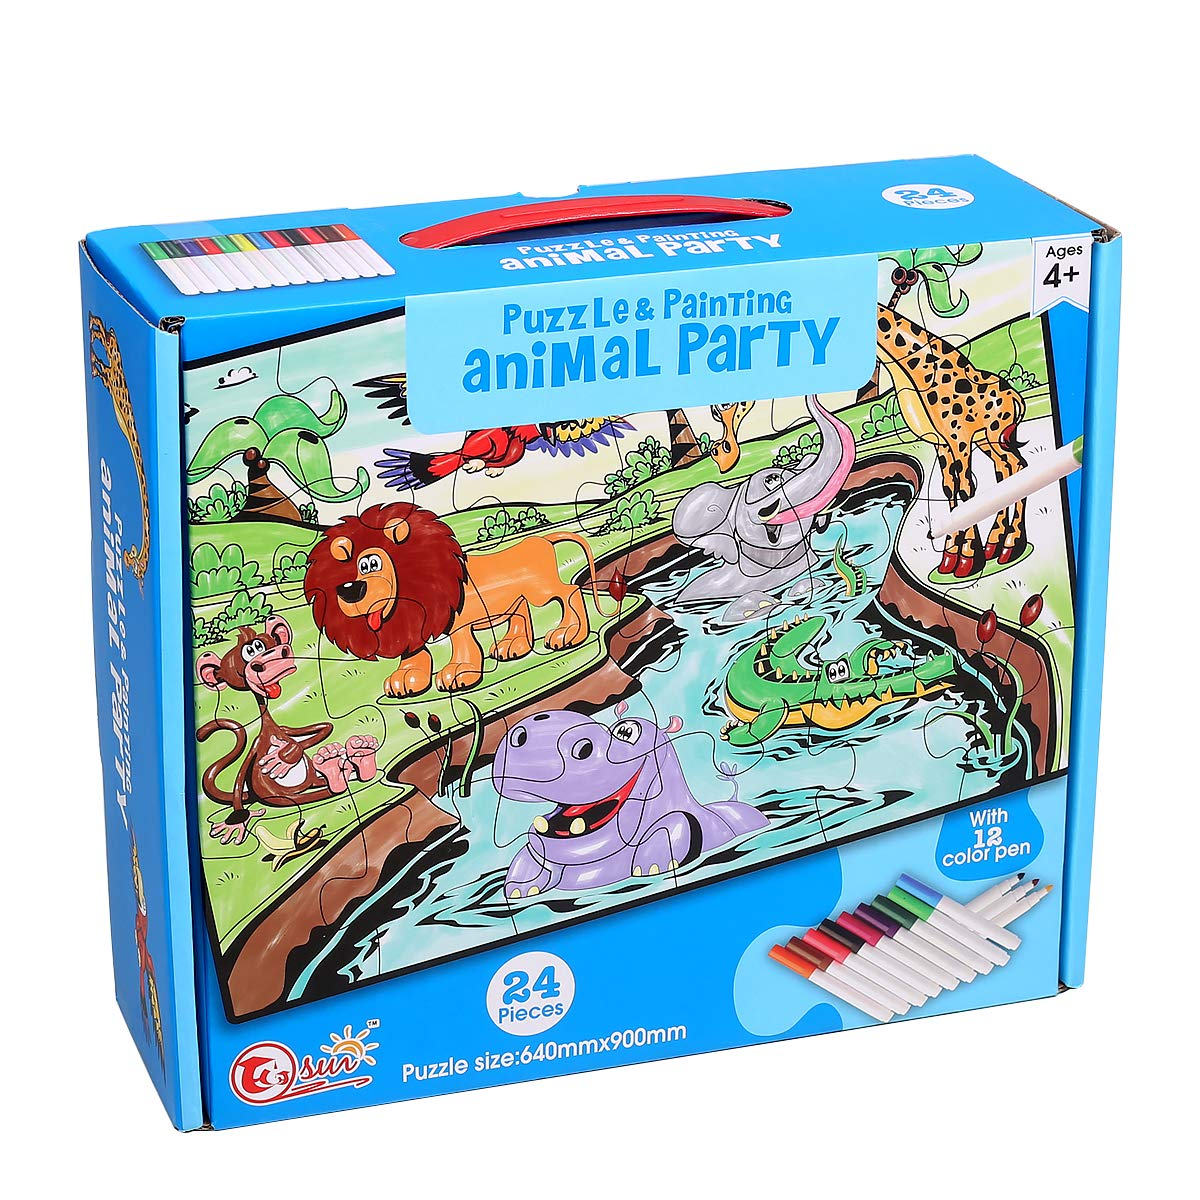 Ingooood - Jigsaw Puzzles for Kids Come with 12 Coloring Markers - Great Girl Gift, Fun Creative Toys & Art Set - Child Game Decompression Leisure Entertainment Childrens Gifts (Animal Party)